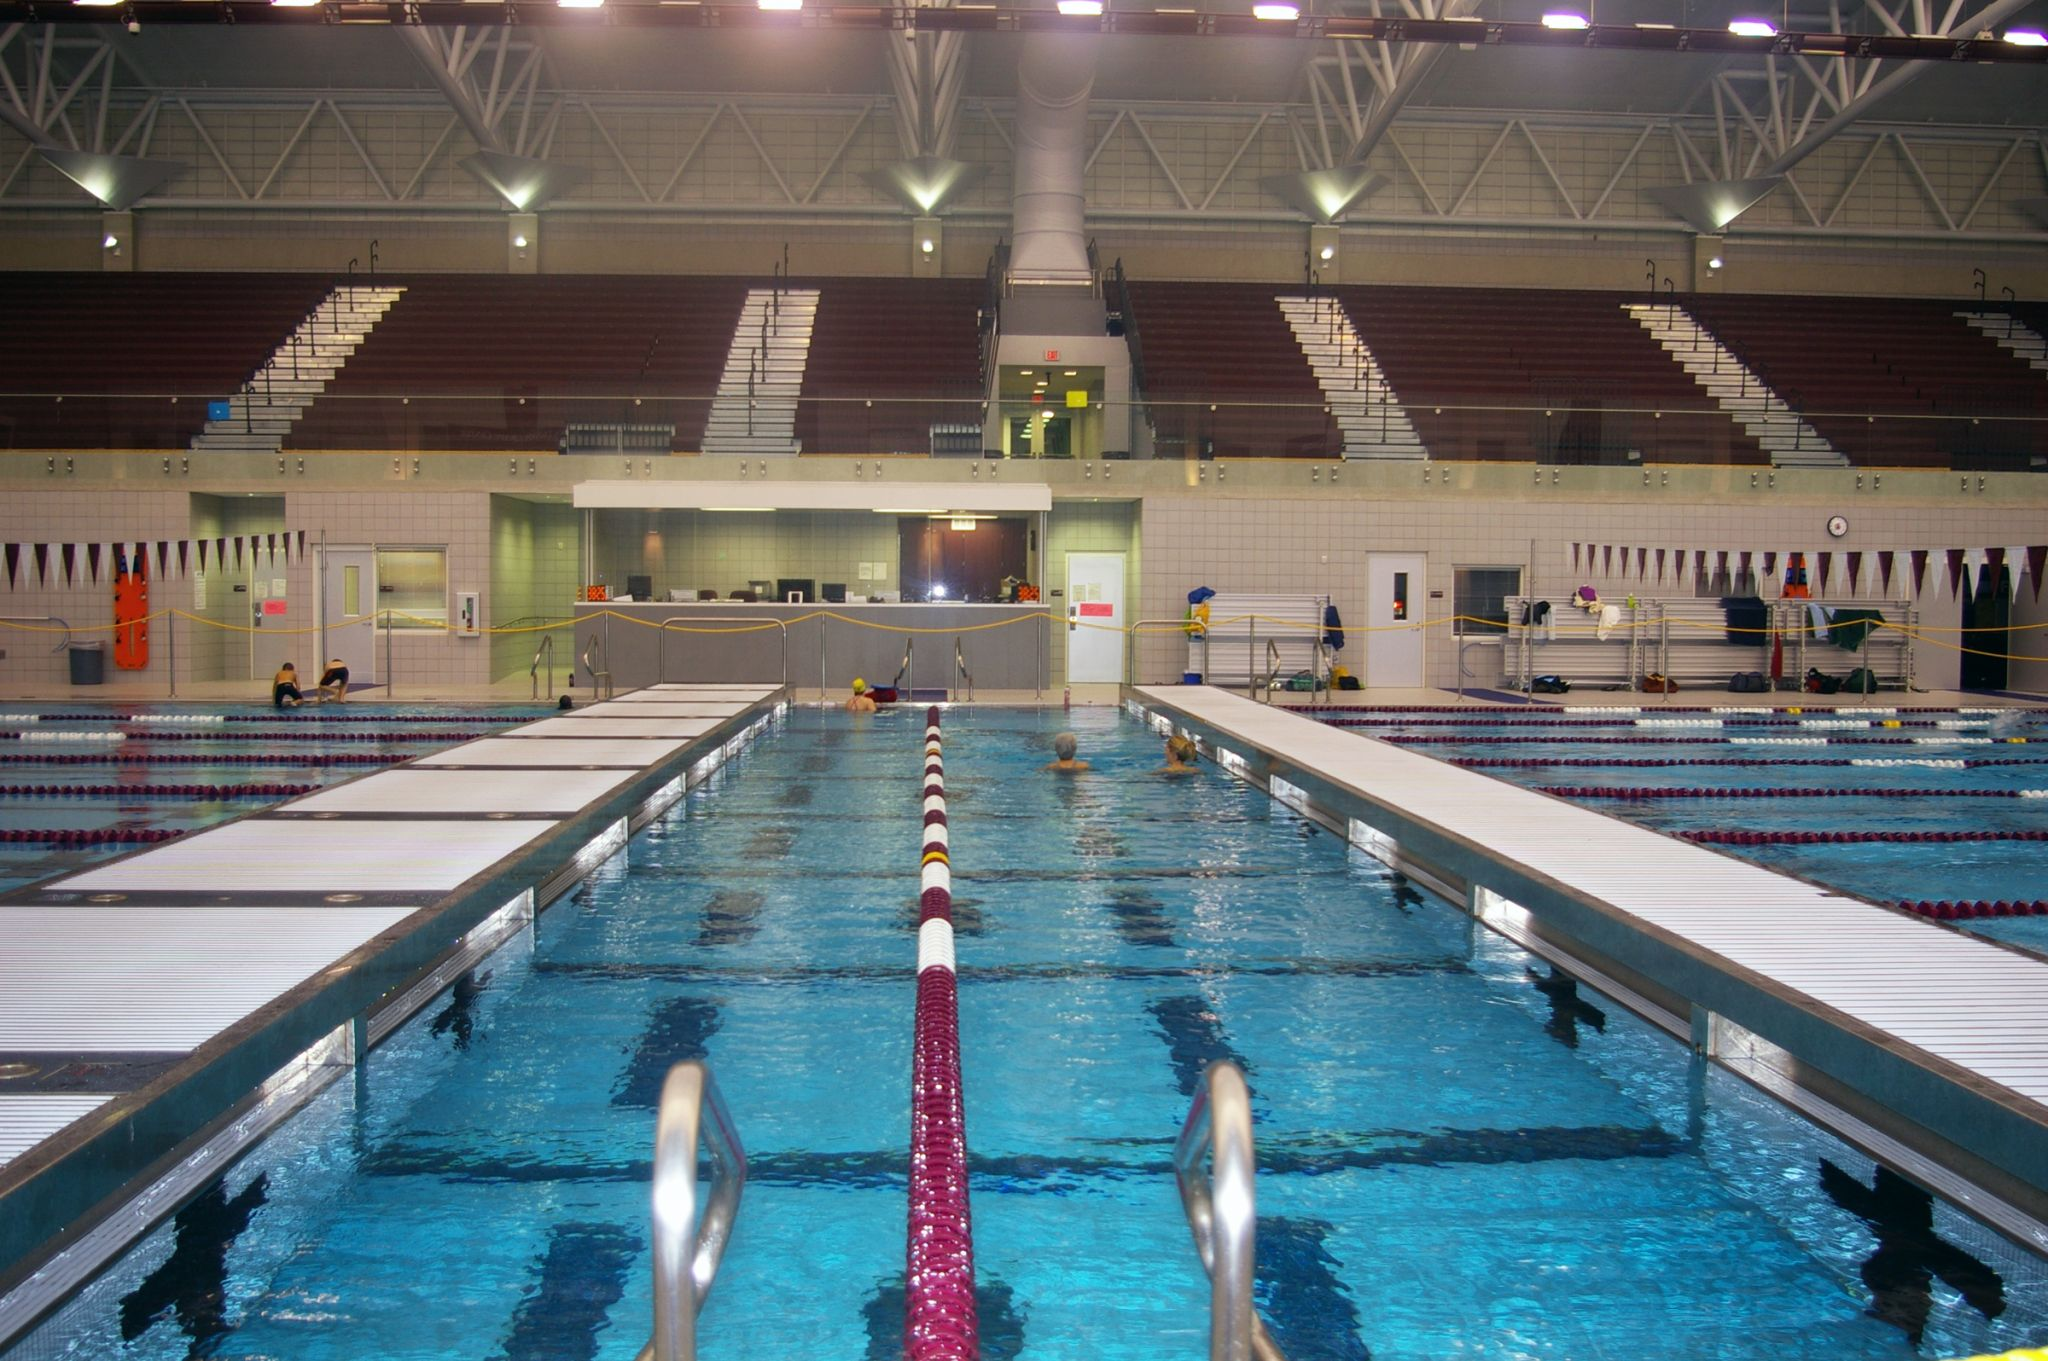 The new 4645-m2 (50,000-sf) Jenks Trojan Aquatic Center (JTAC) in Oklahoma owes its excellent IAQ to dehumidifi ers and a chloraminescapture gutter system. Photo courtesy John Peterson